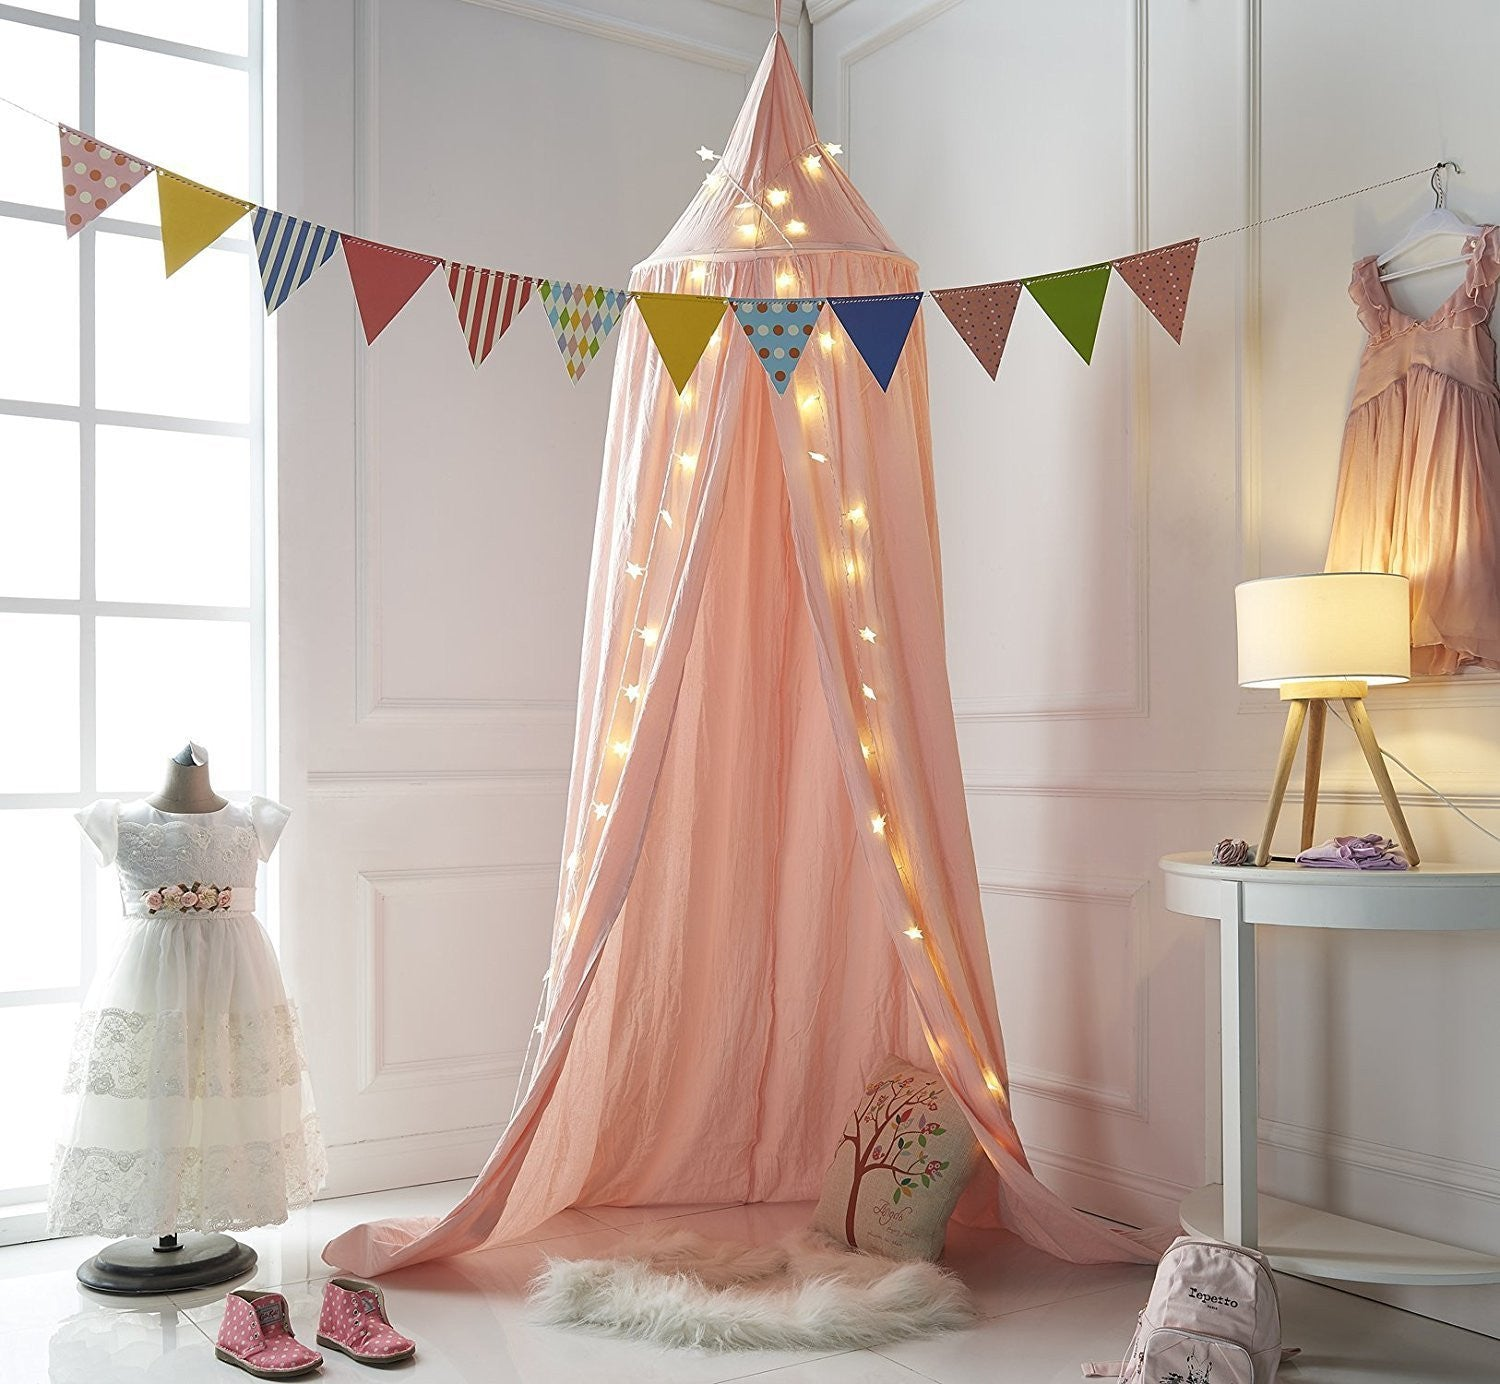 - Dome Princess Bed Canopy Bed Curtain Mosquito Net Children Room